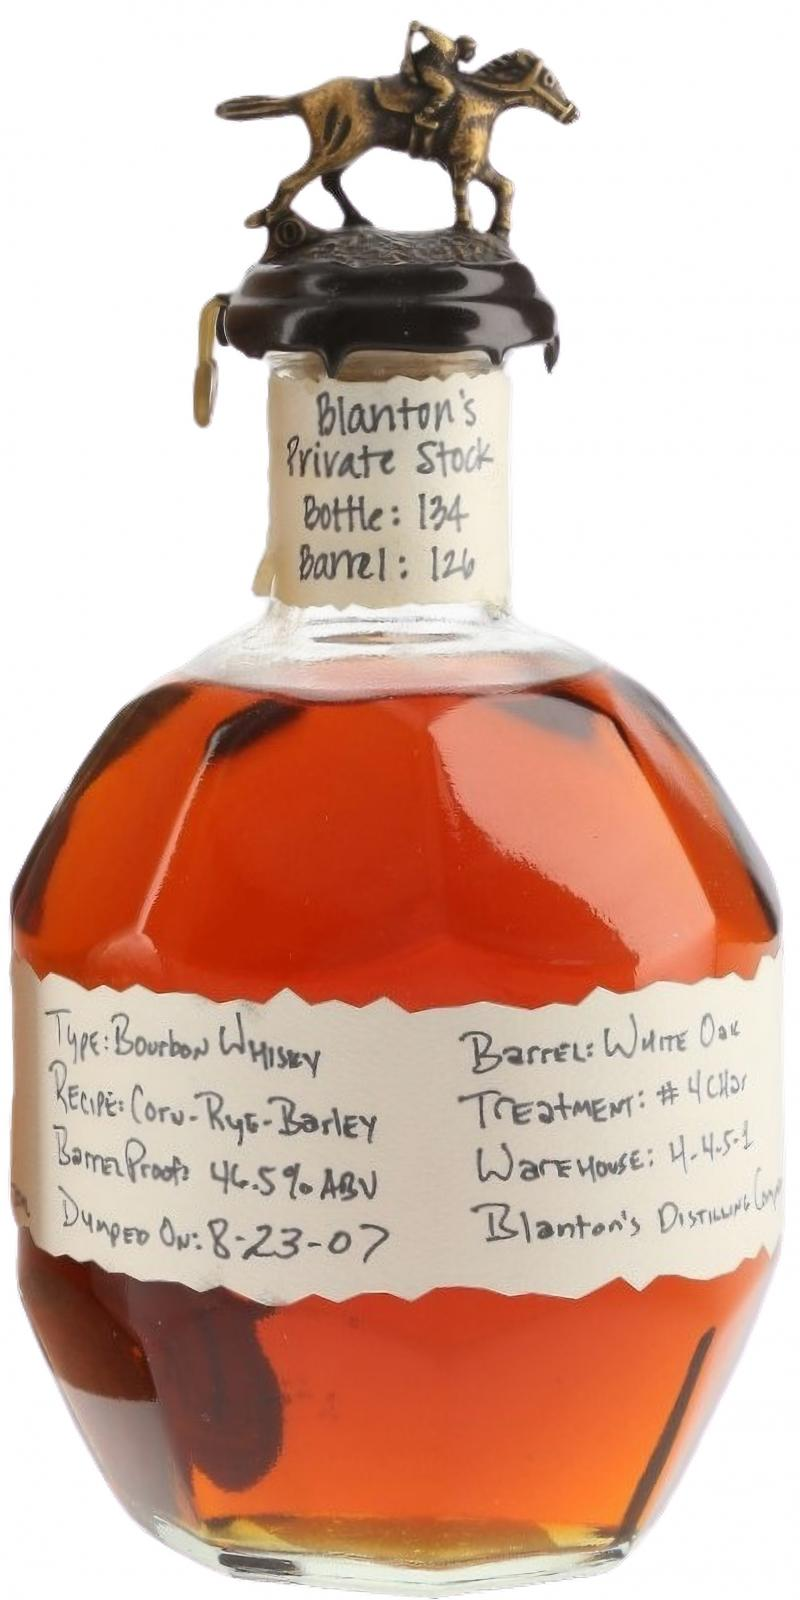 Blanton's Private Stock